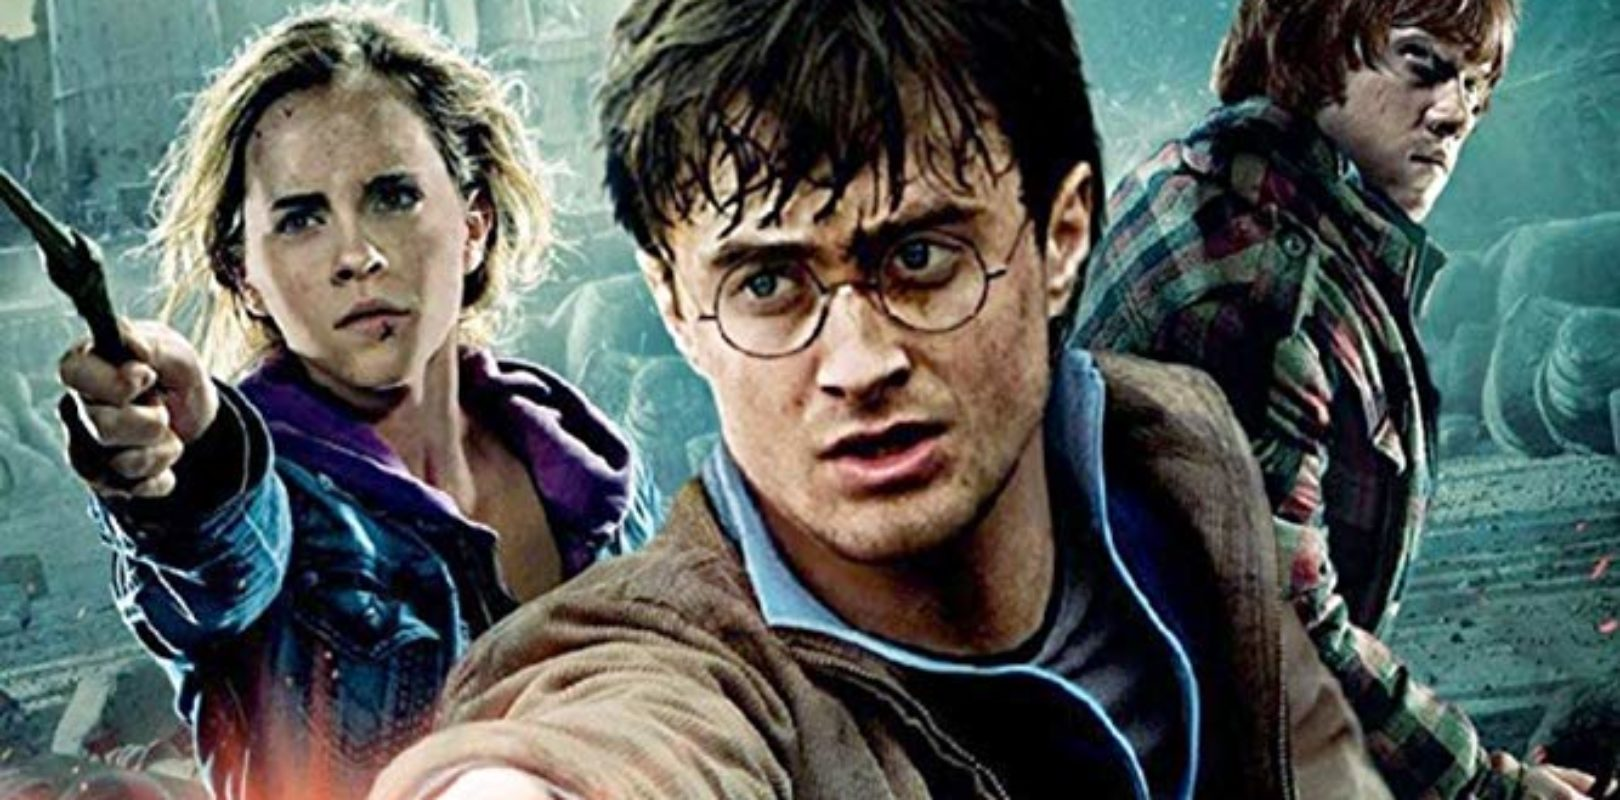 Harry Potter And The Deathly Hallows Part 2 2011 Movie Review Film Blather